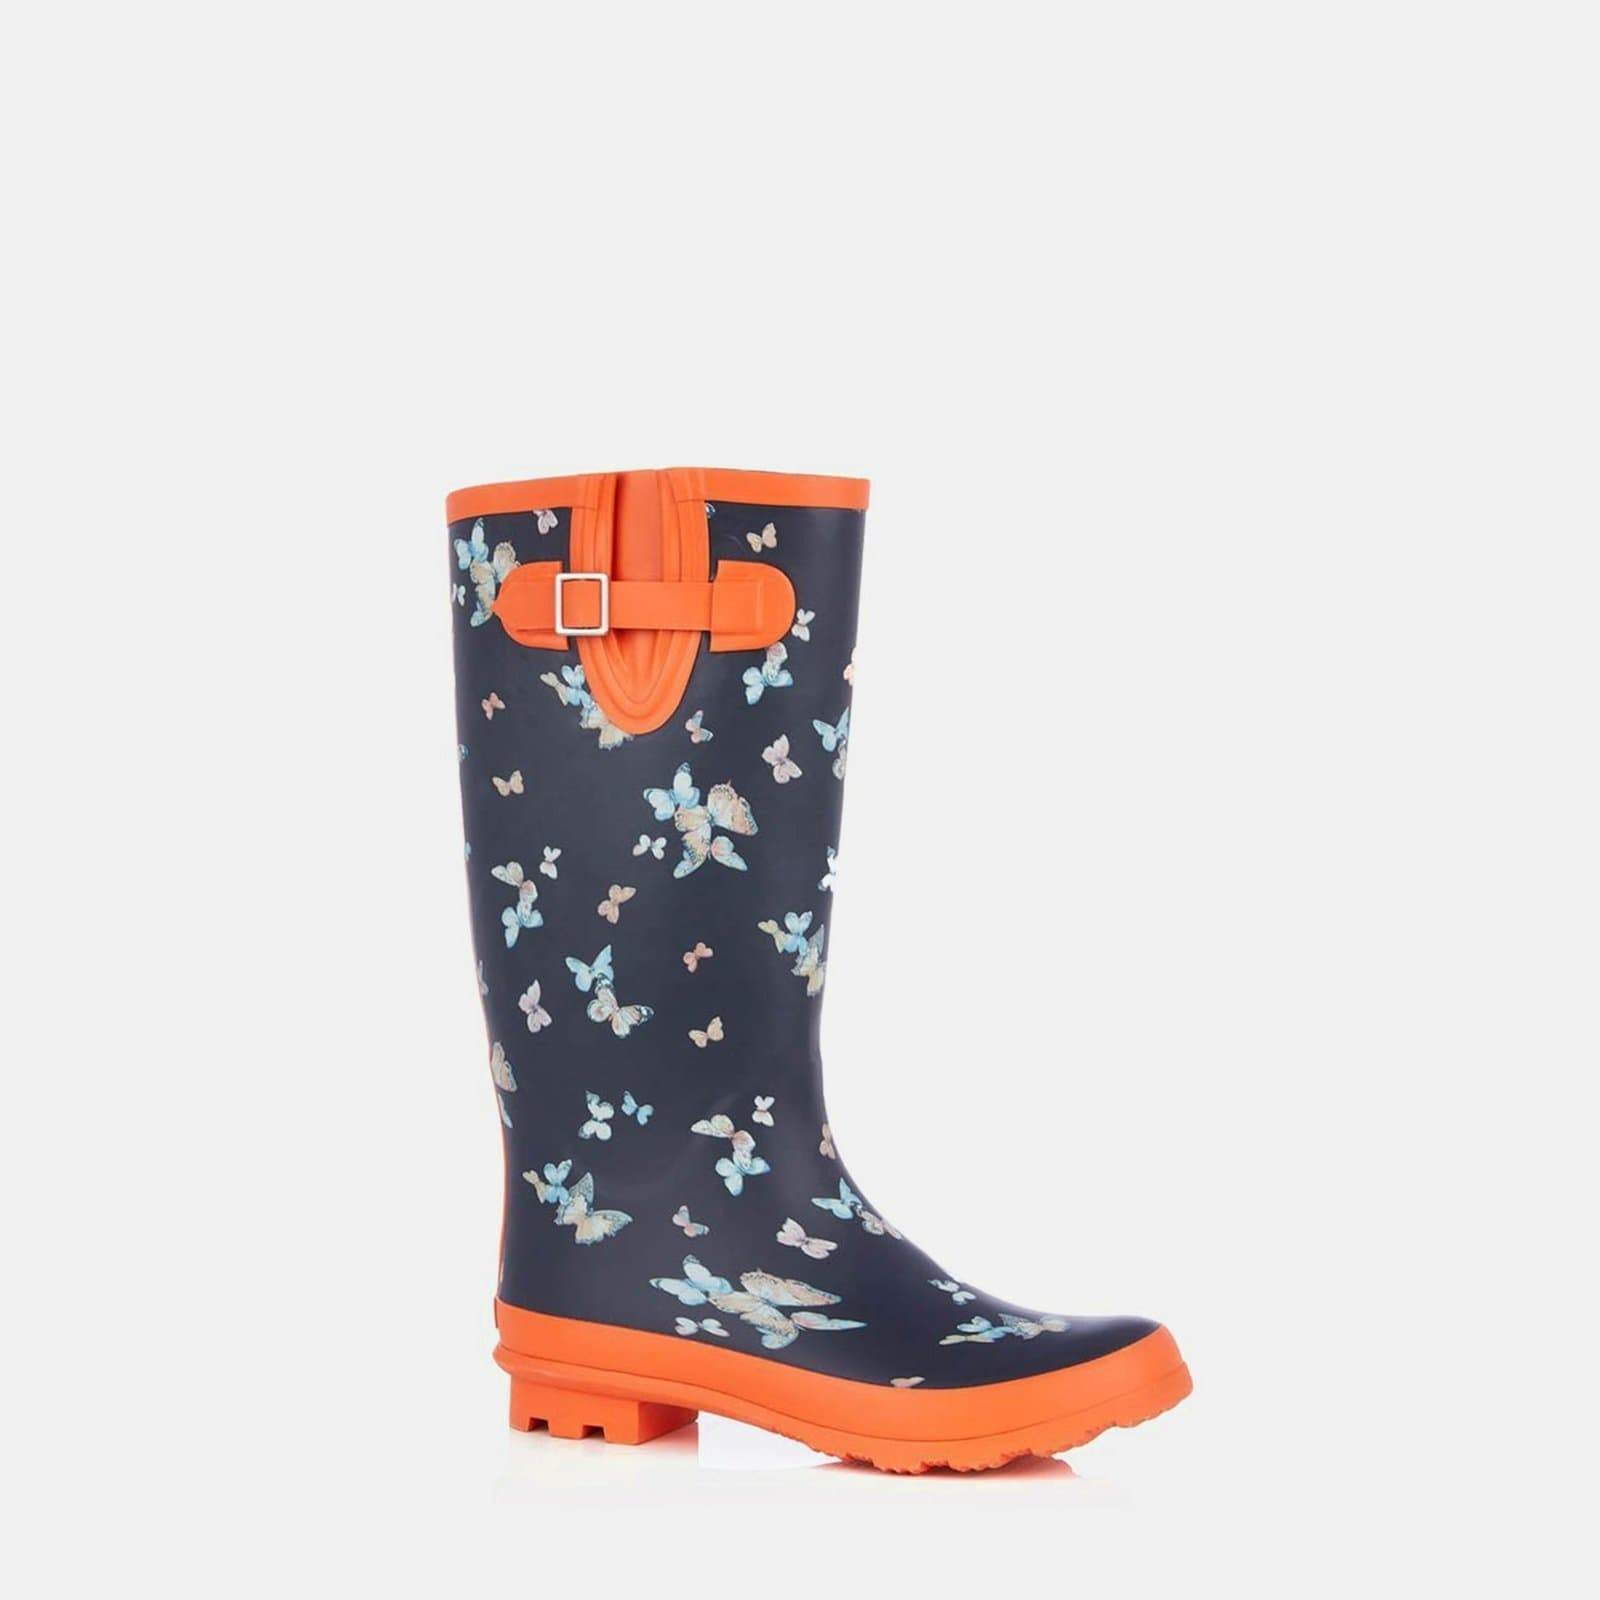 Redfoot Footwear OASIS BUTTERFLY WELLY